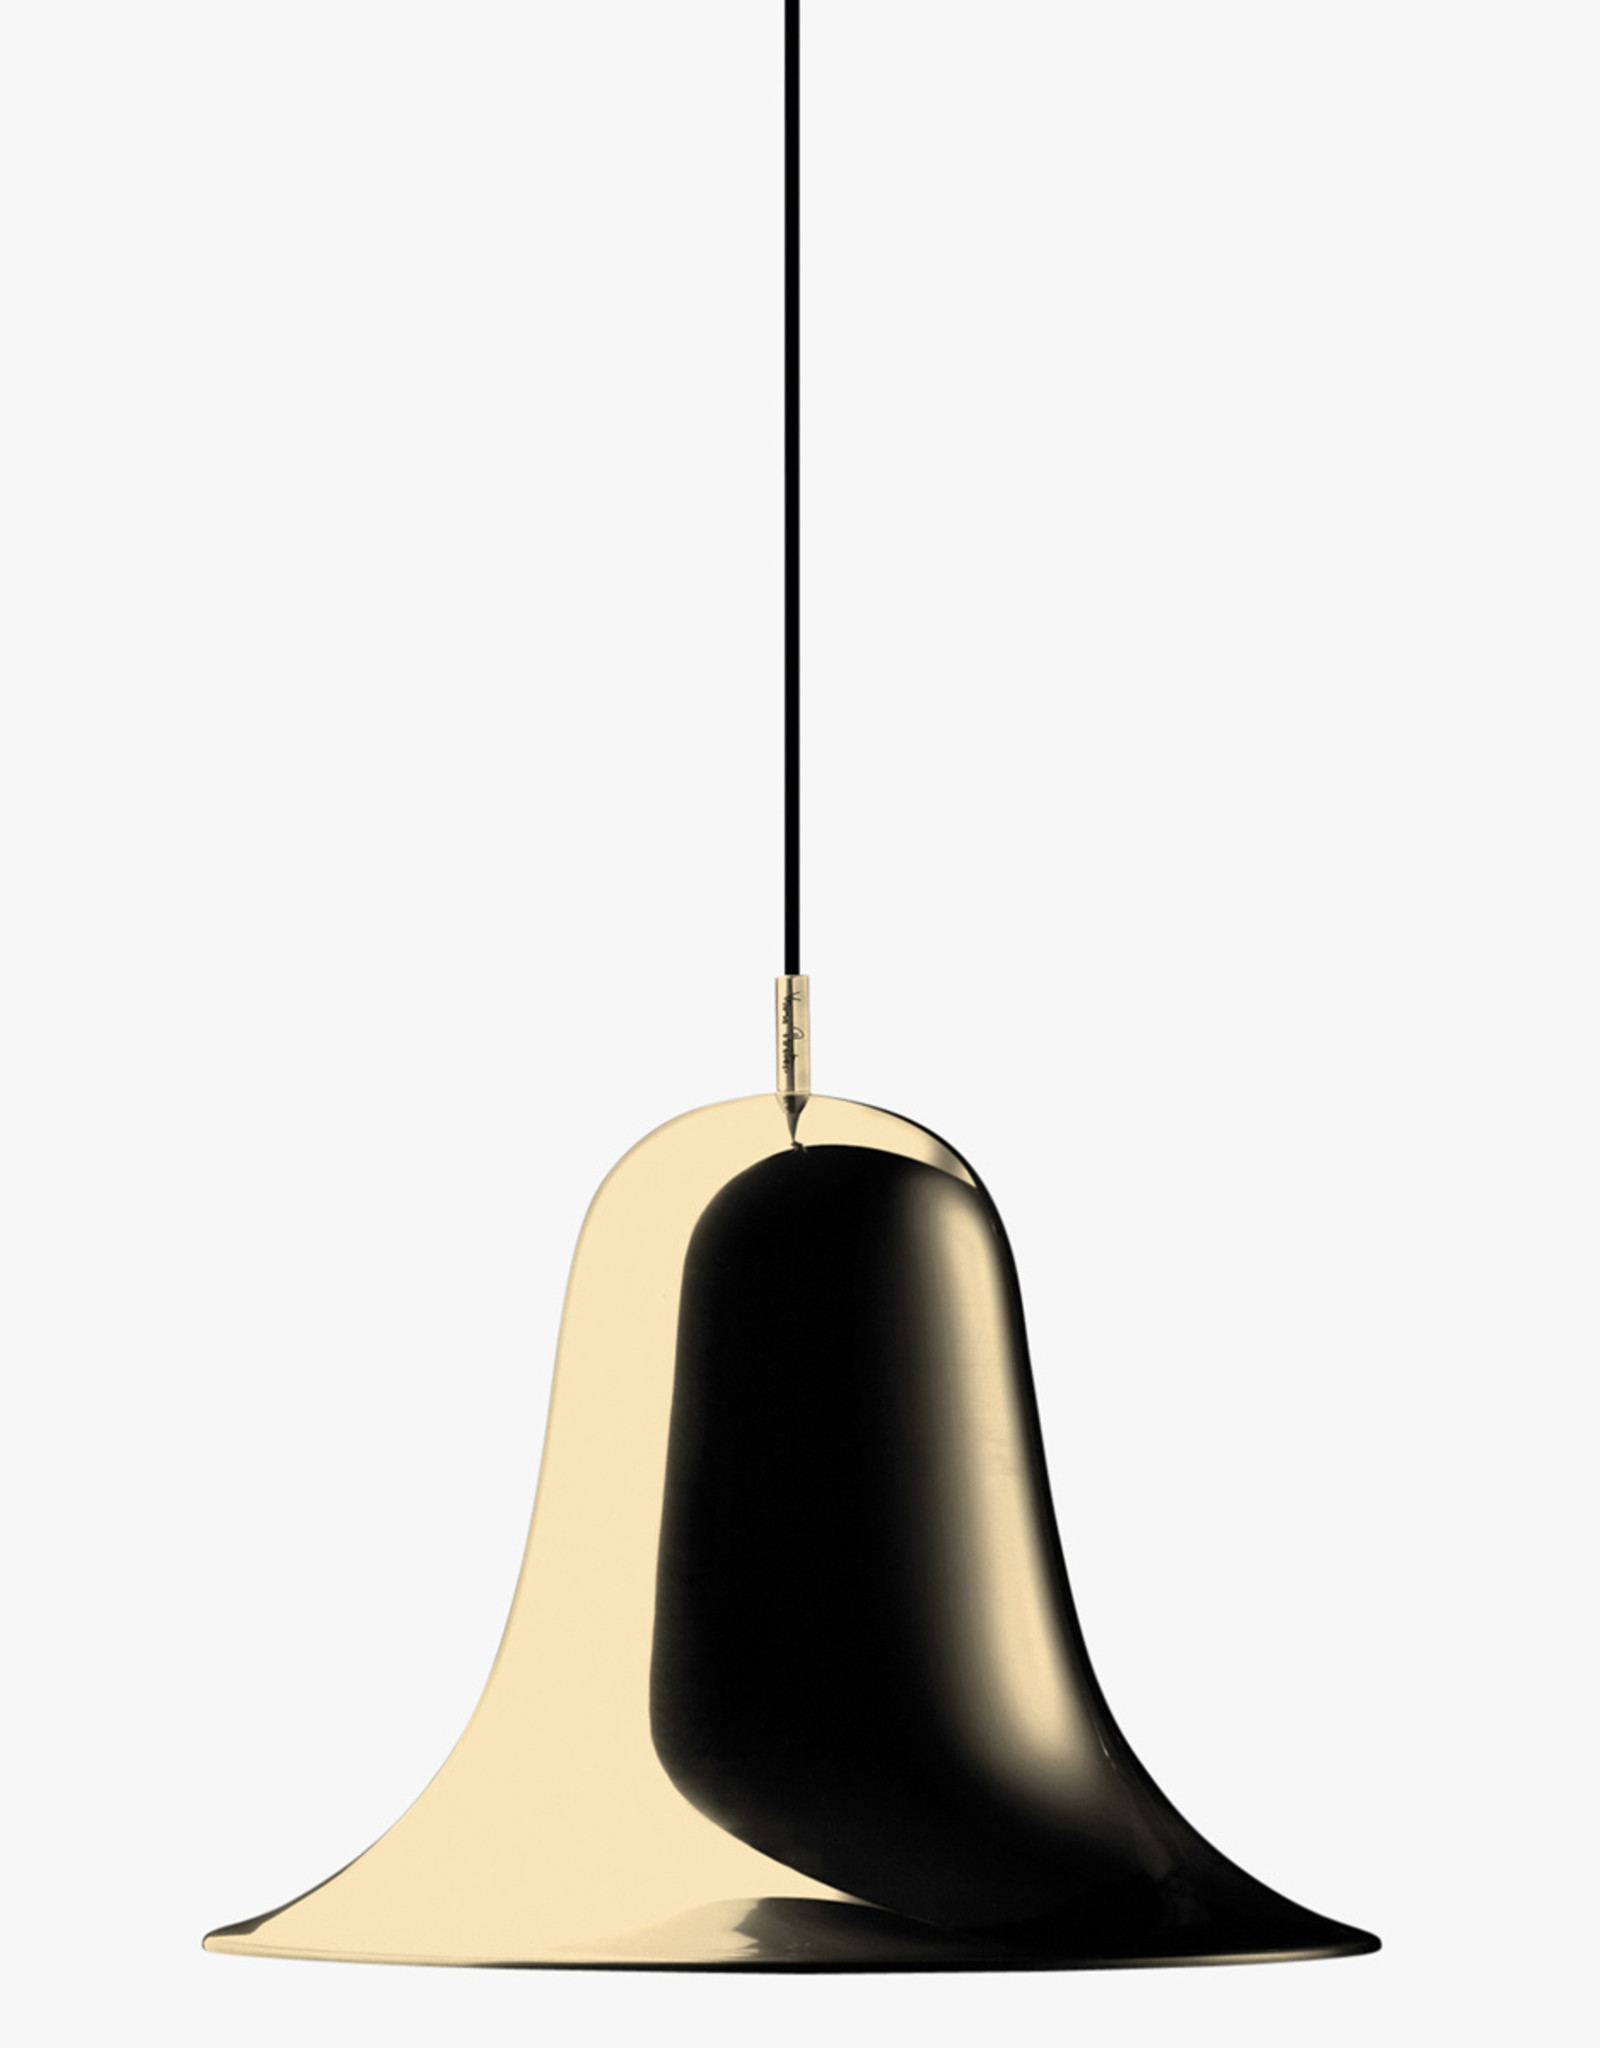 Pantop table light by Verner Panton | Shiny brass | Dia30cm x H52cm | 1x E27 max 60W bulb required